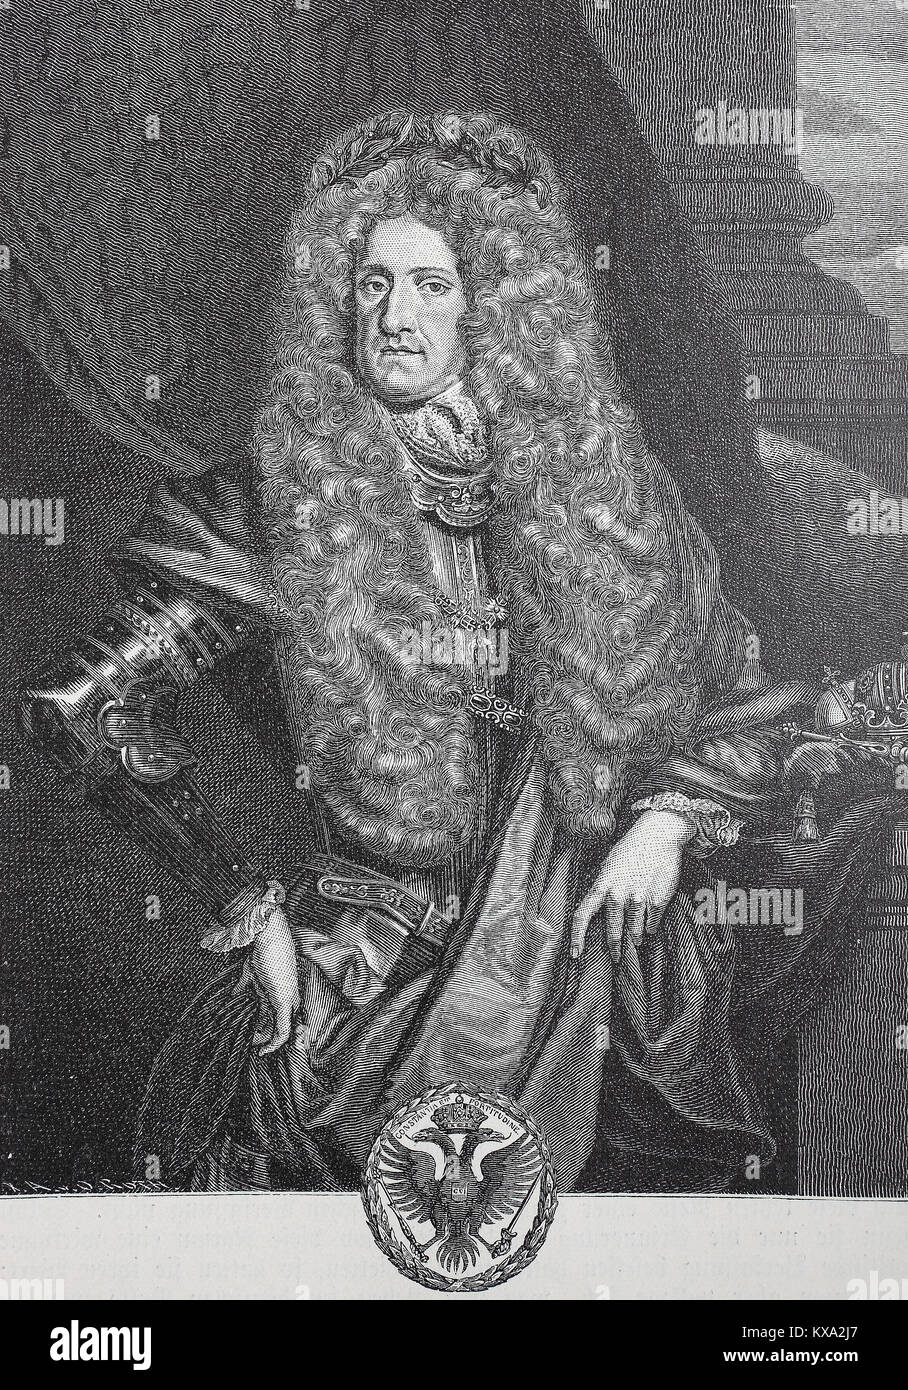 Charles VI, 1 October 1685 - 20 October 1740, succeeded his elder brother, Joseph I, as Holy Roman Emperor, King - Stock Image